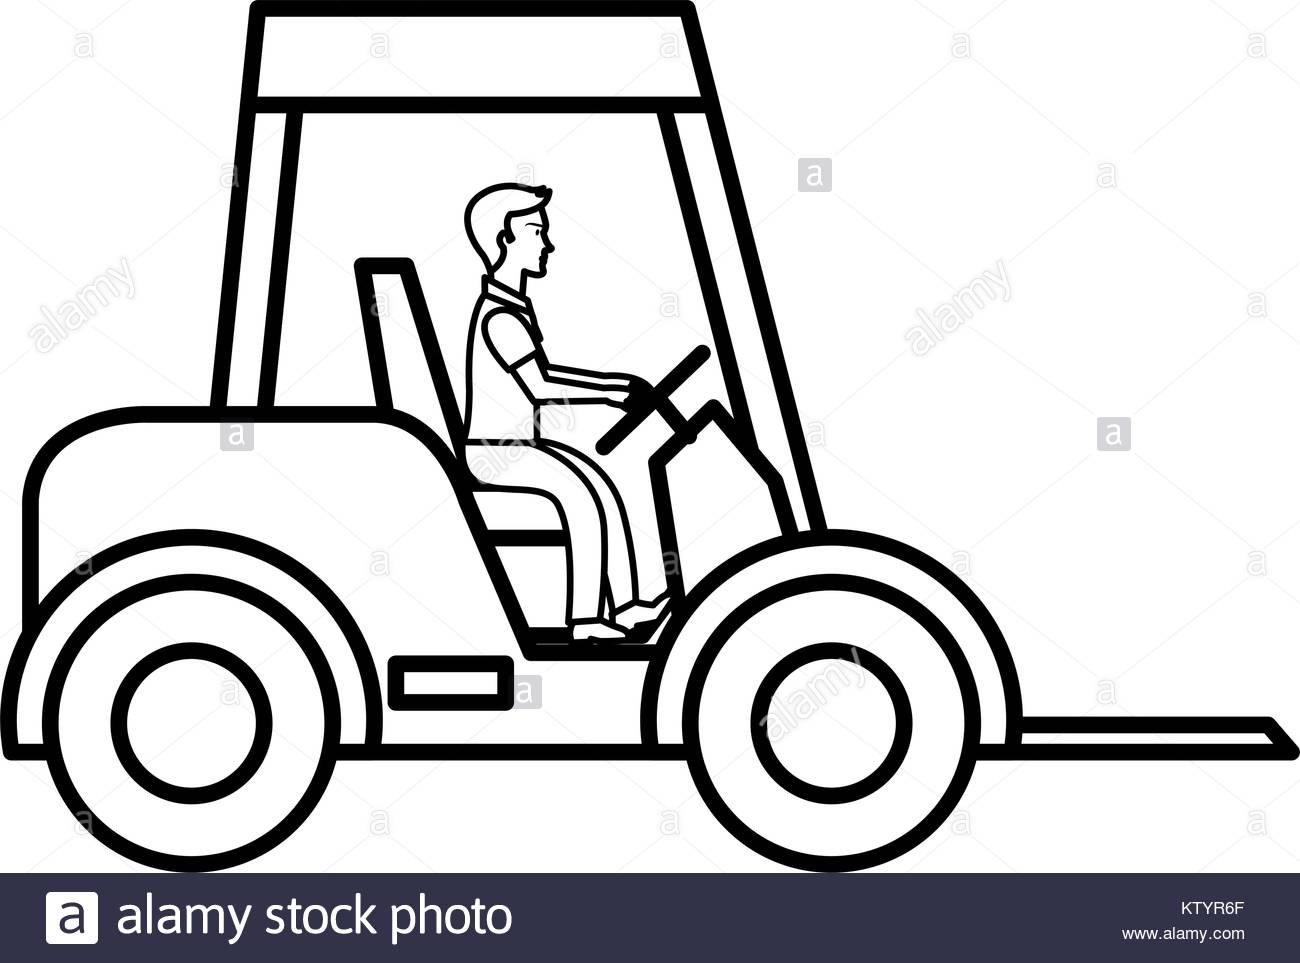 1300x963 Lift Truck Black And White Stock Photos Amp Images